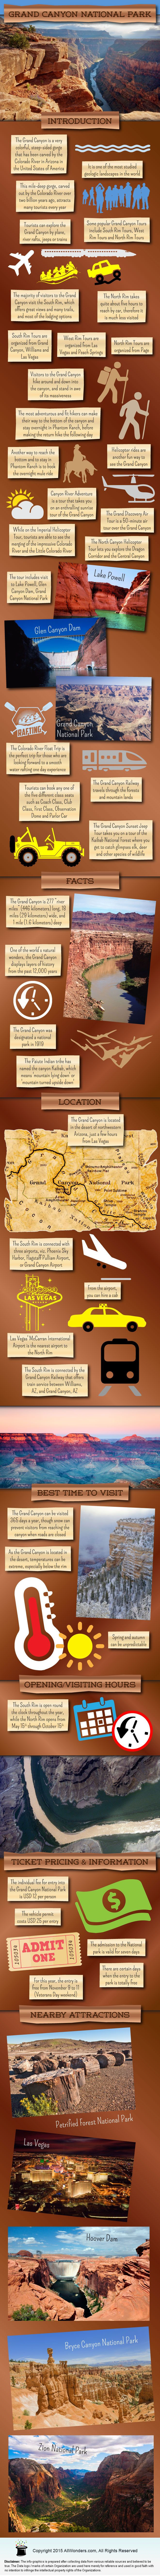 Infographic showing Facts and Information about Grand Canyon National Park. Read to know about Its Location, Best time to visit, nearby attractions etc.